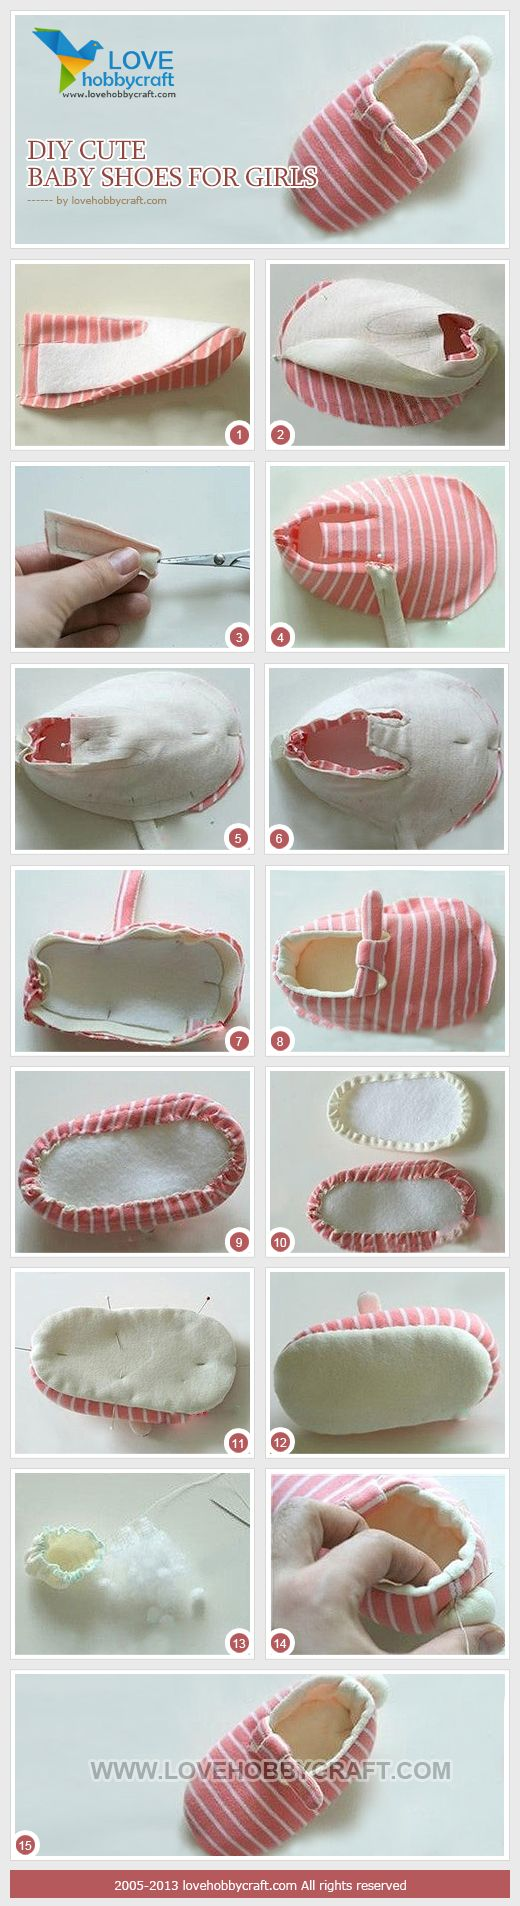 jewellery sale DIY cute baby shoes for girls